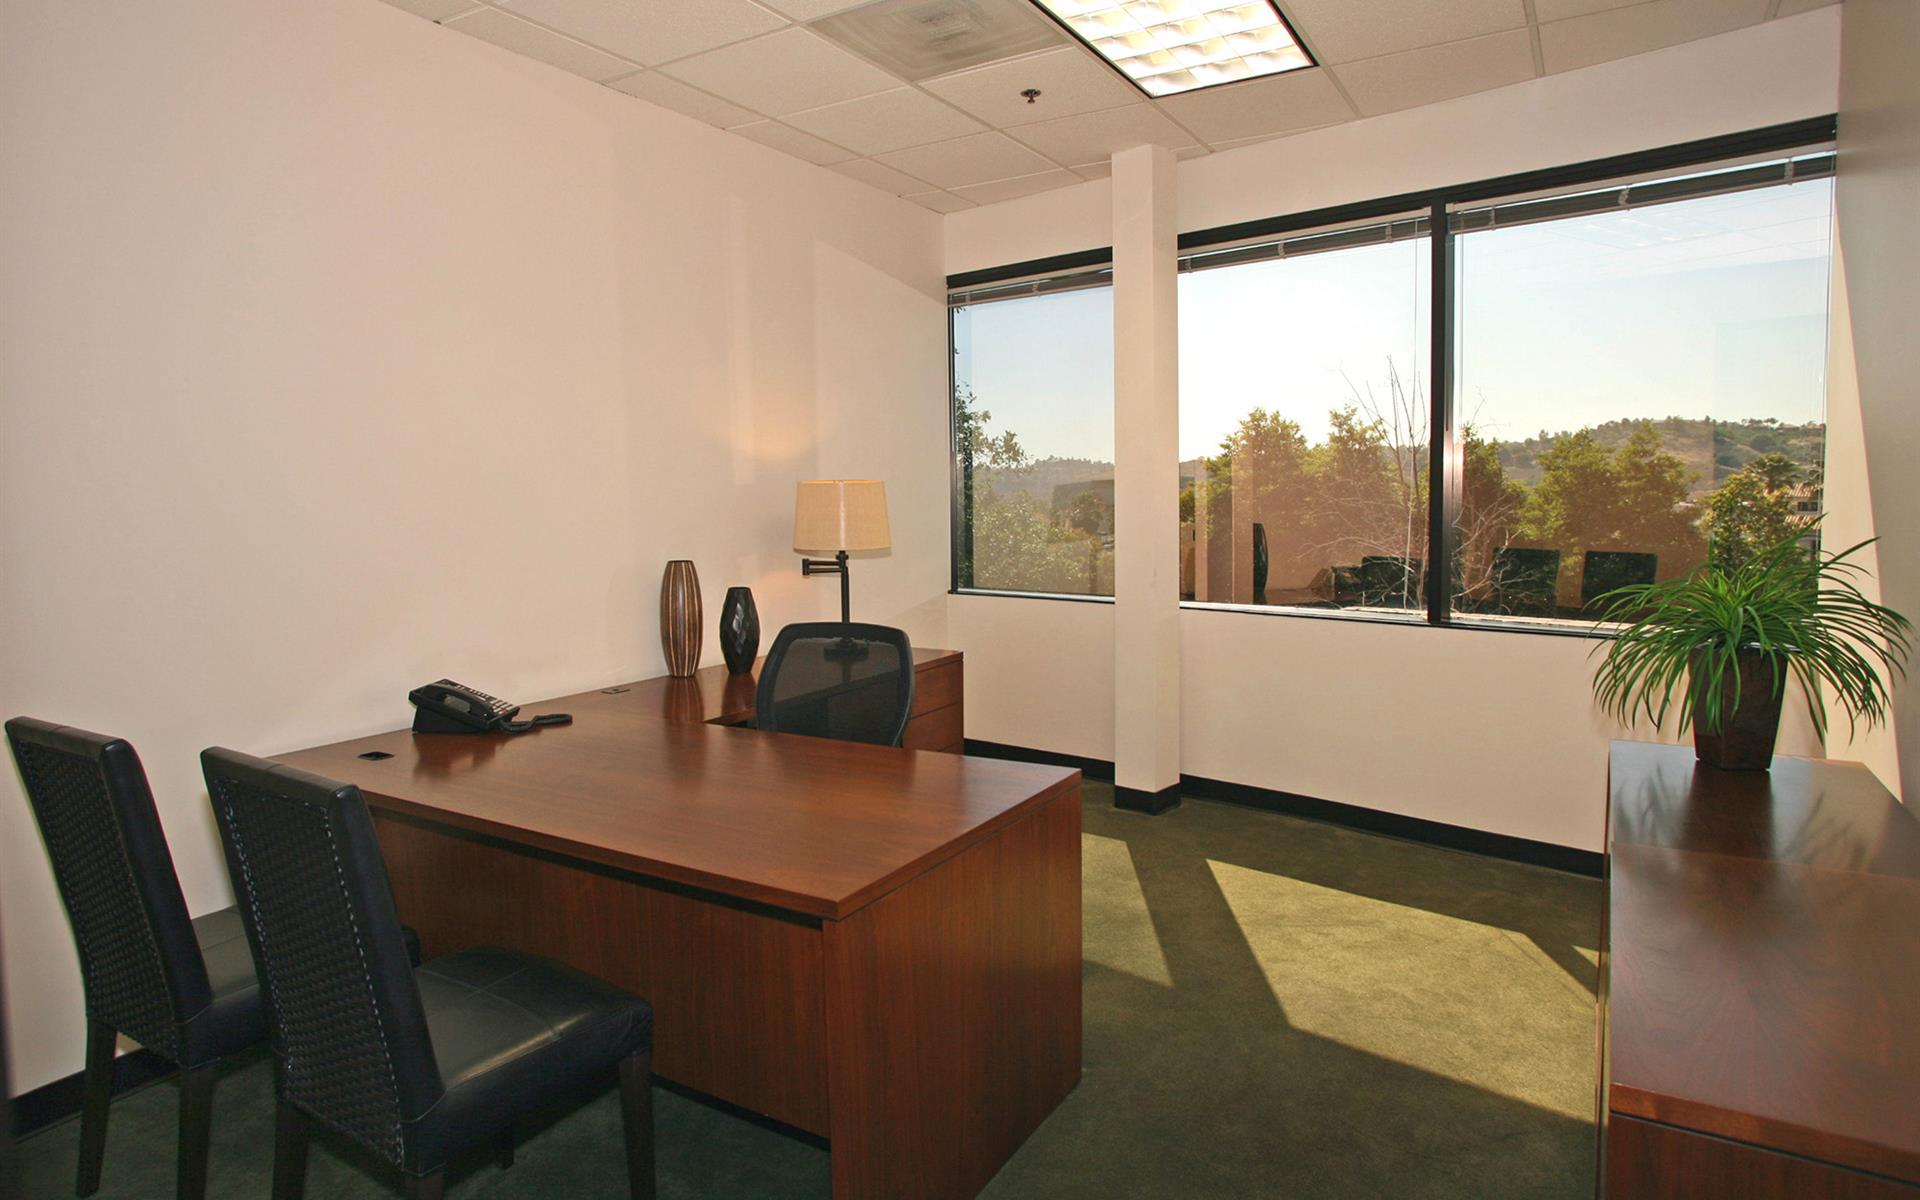 (RSM) Rancho Santa Margarita - Exterior Office